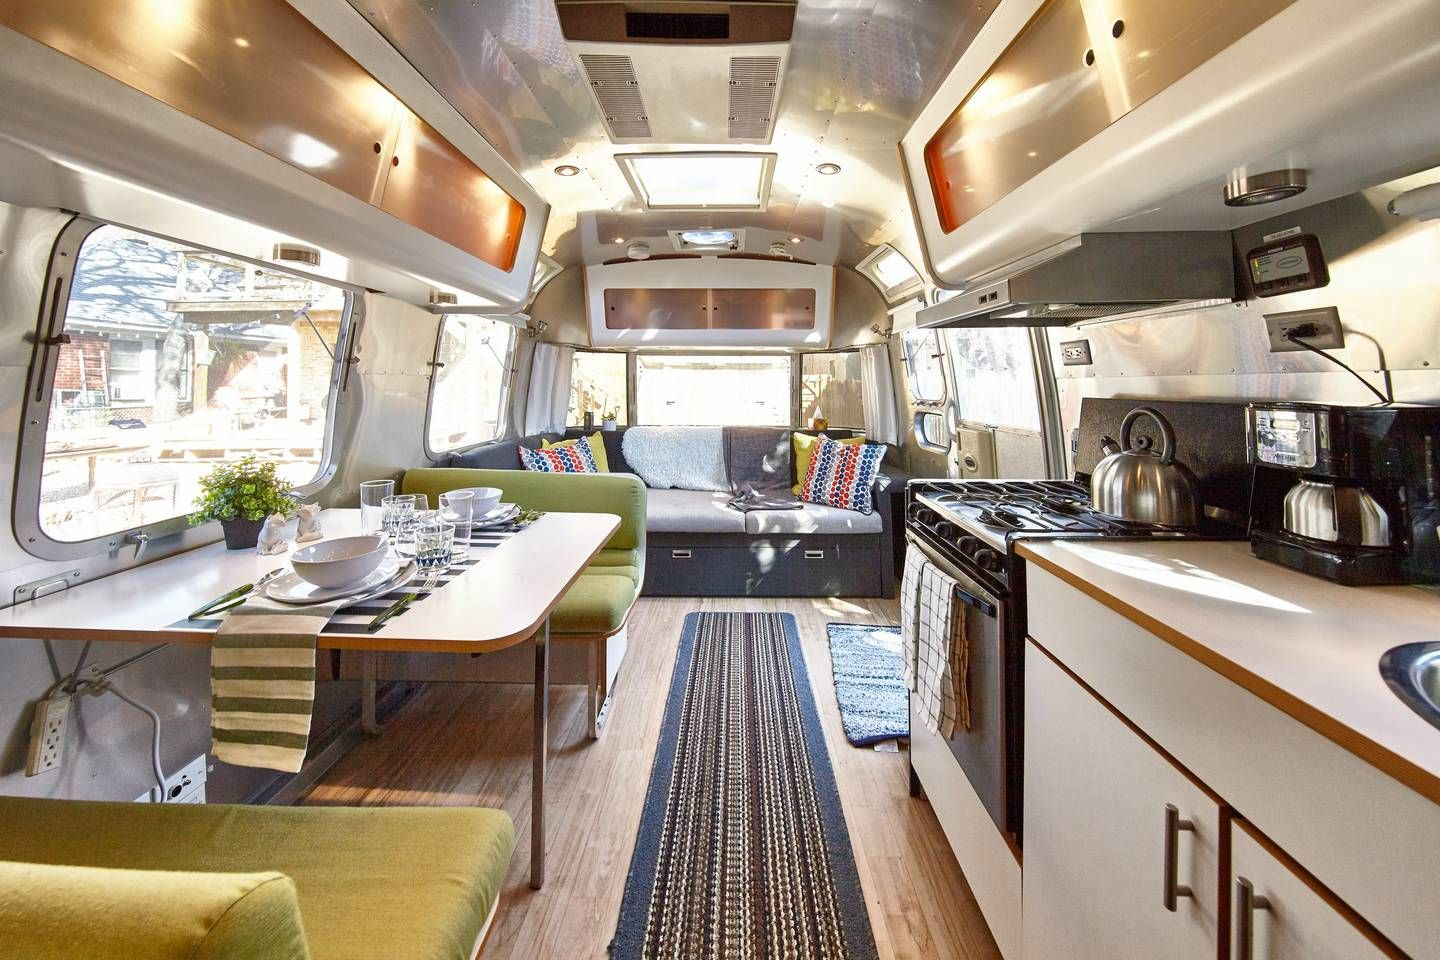 Airstream oasis lower greenville campersrvs for rent